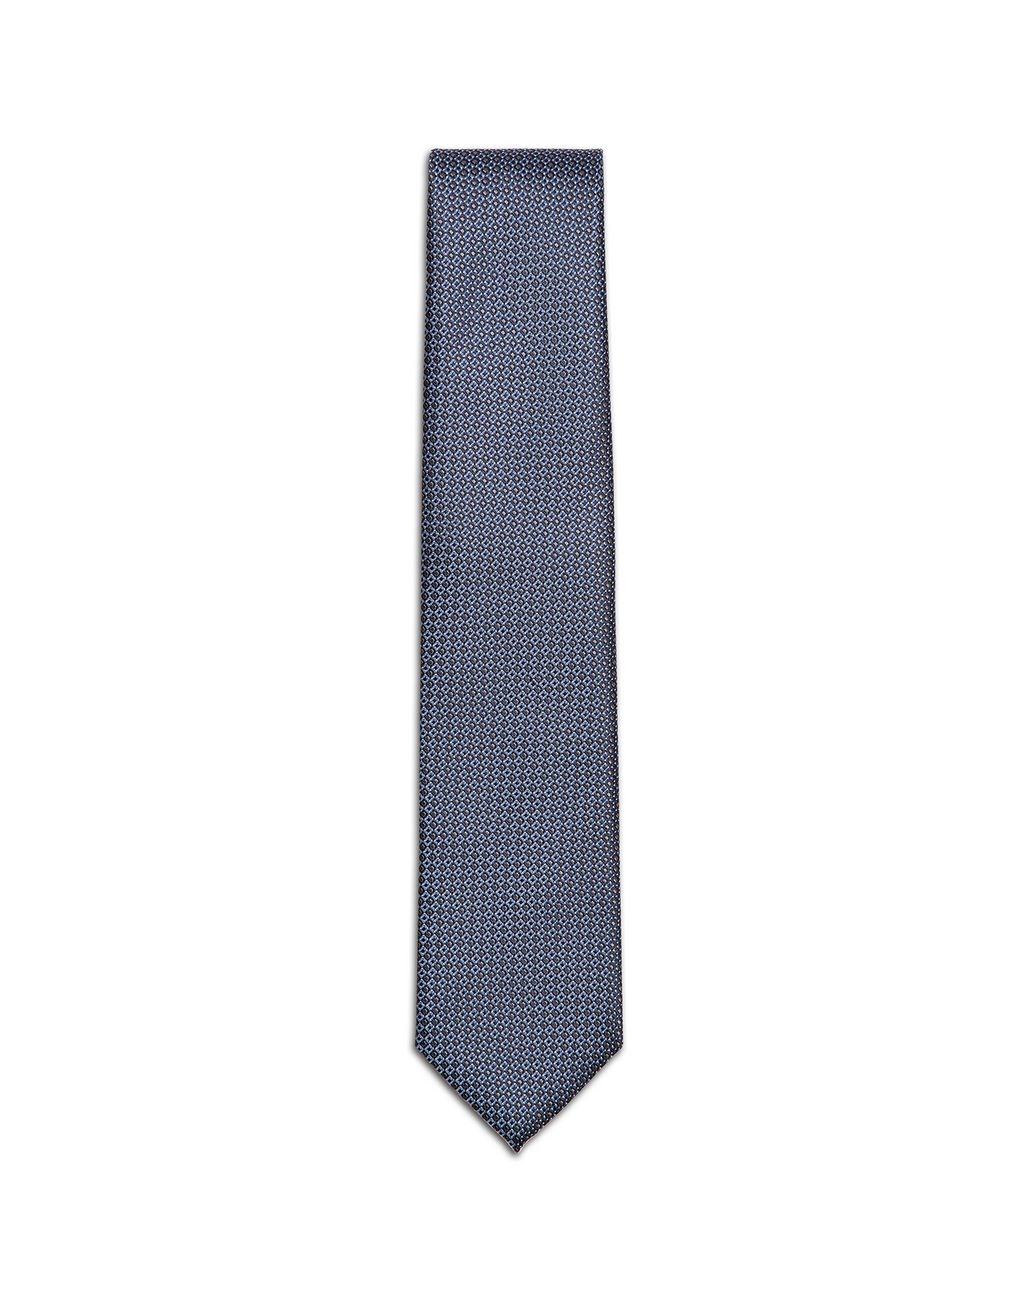 BRIONI Gray and Bluette Micro-Design Tie Tie & Pocket Square Man f